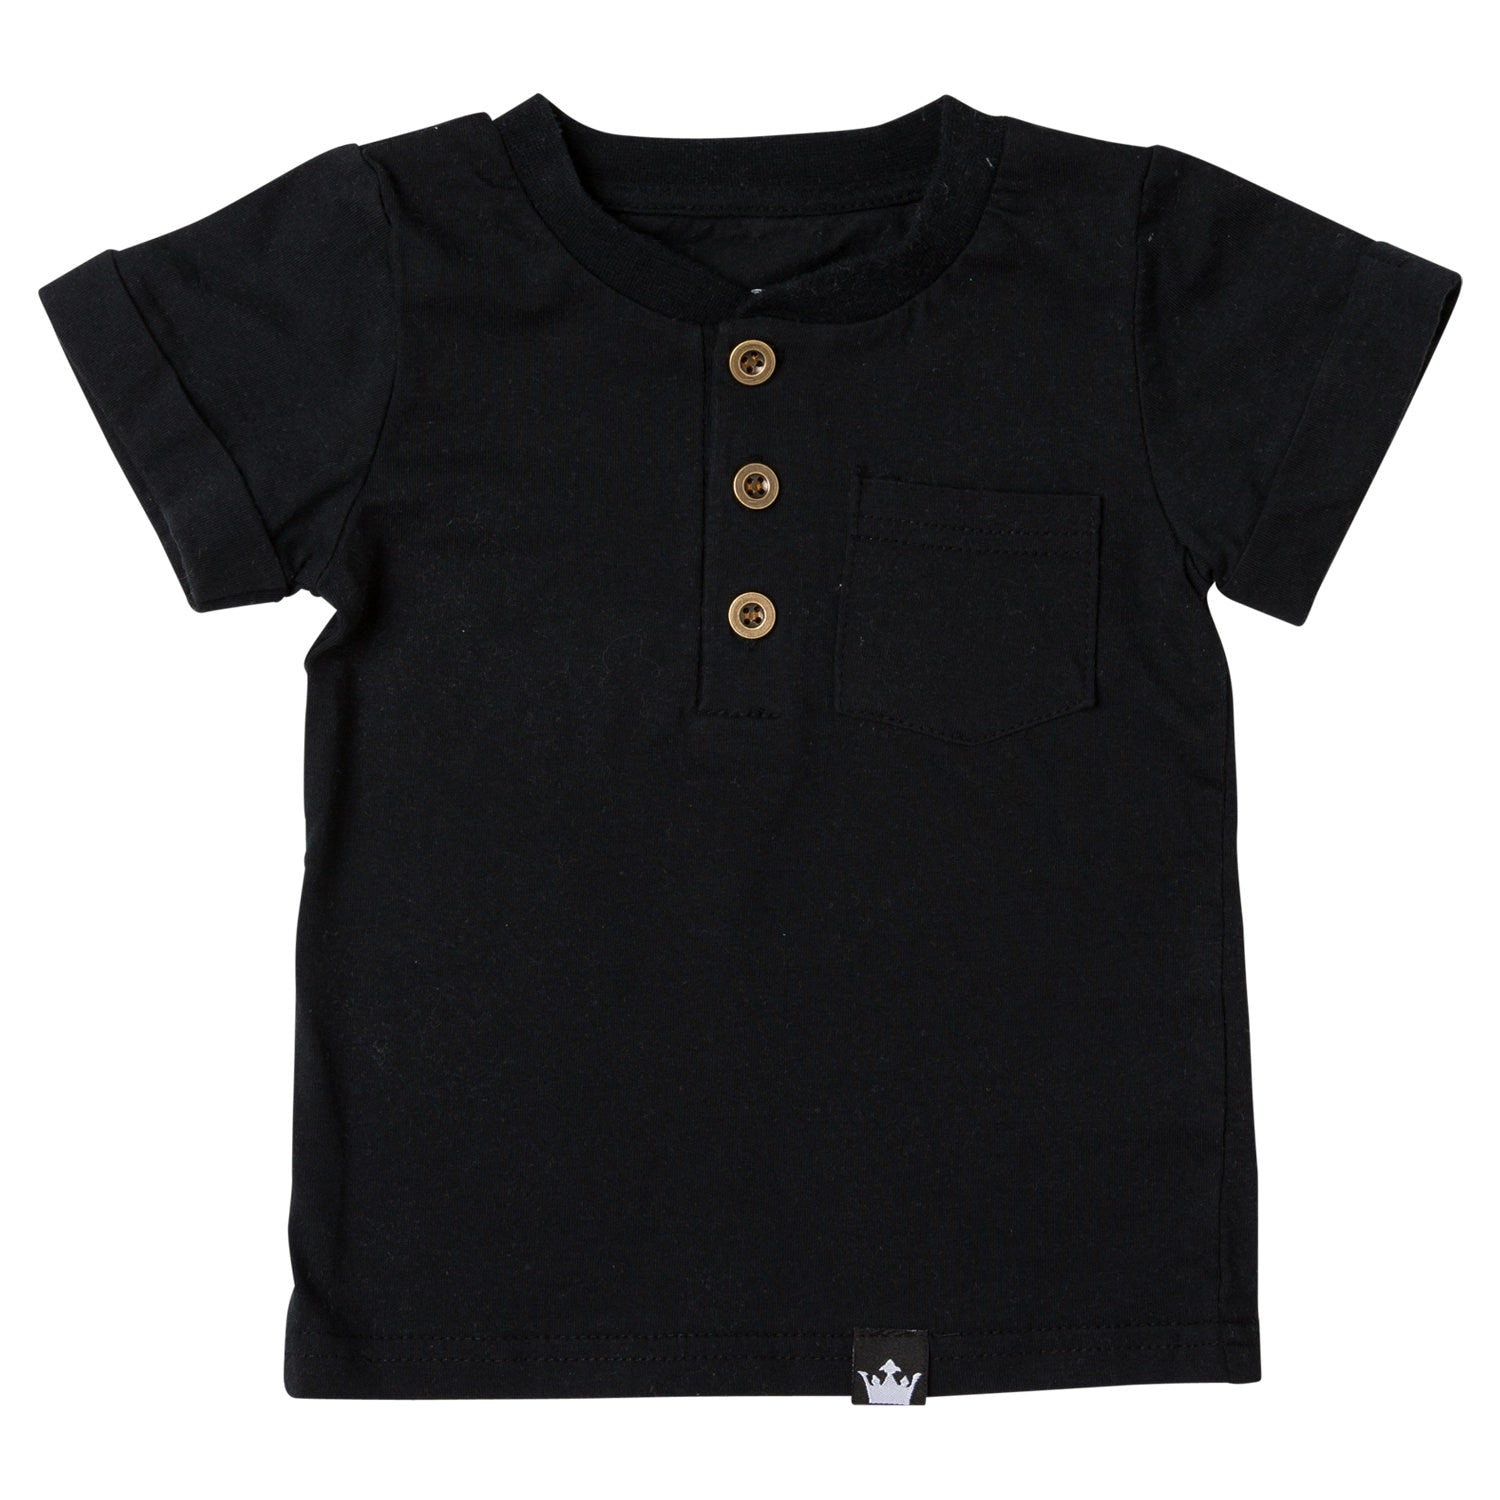 hens-blk-black-henley-shirt-front-product.jpg